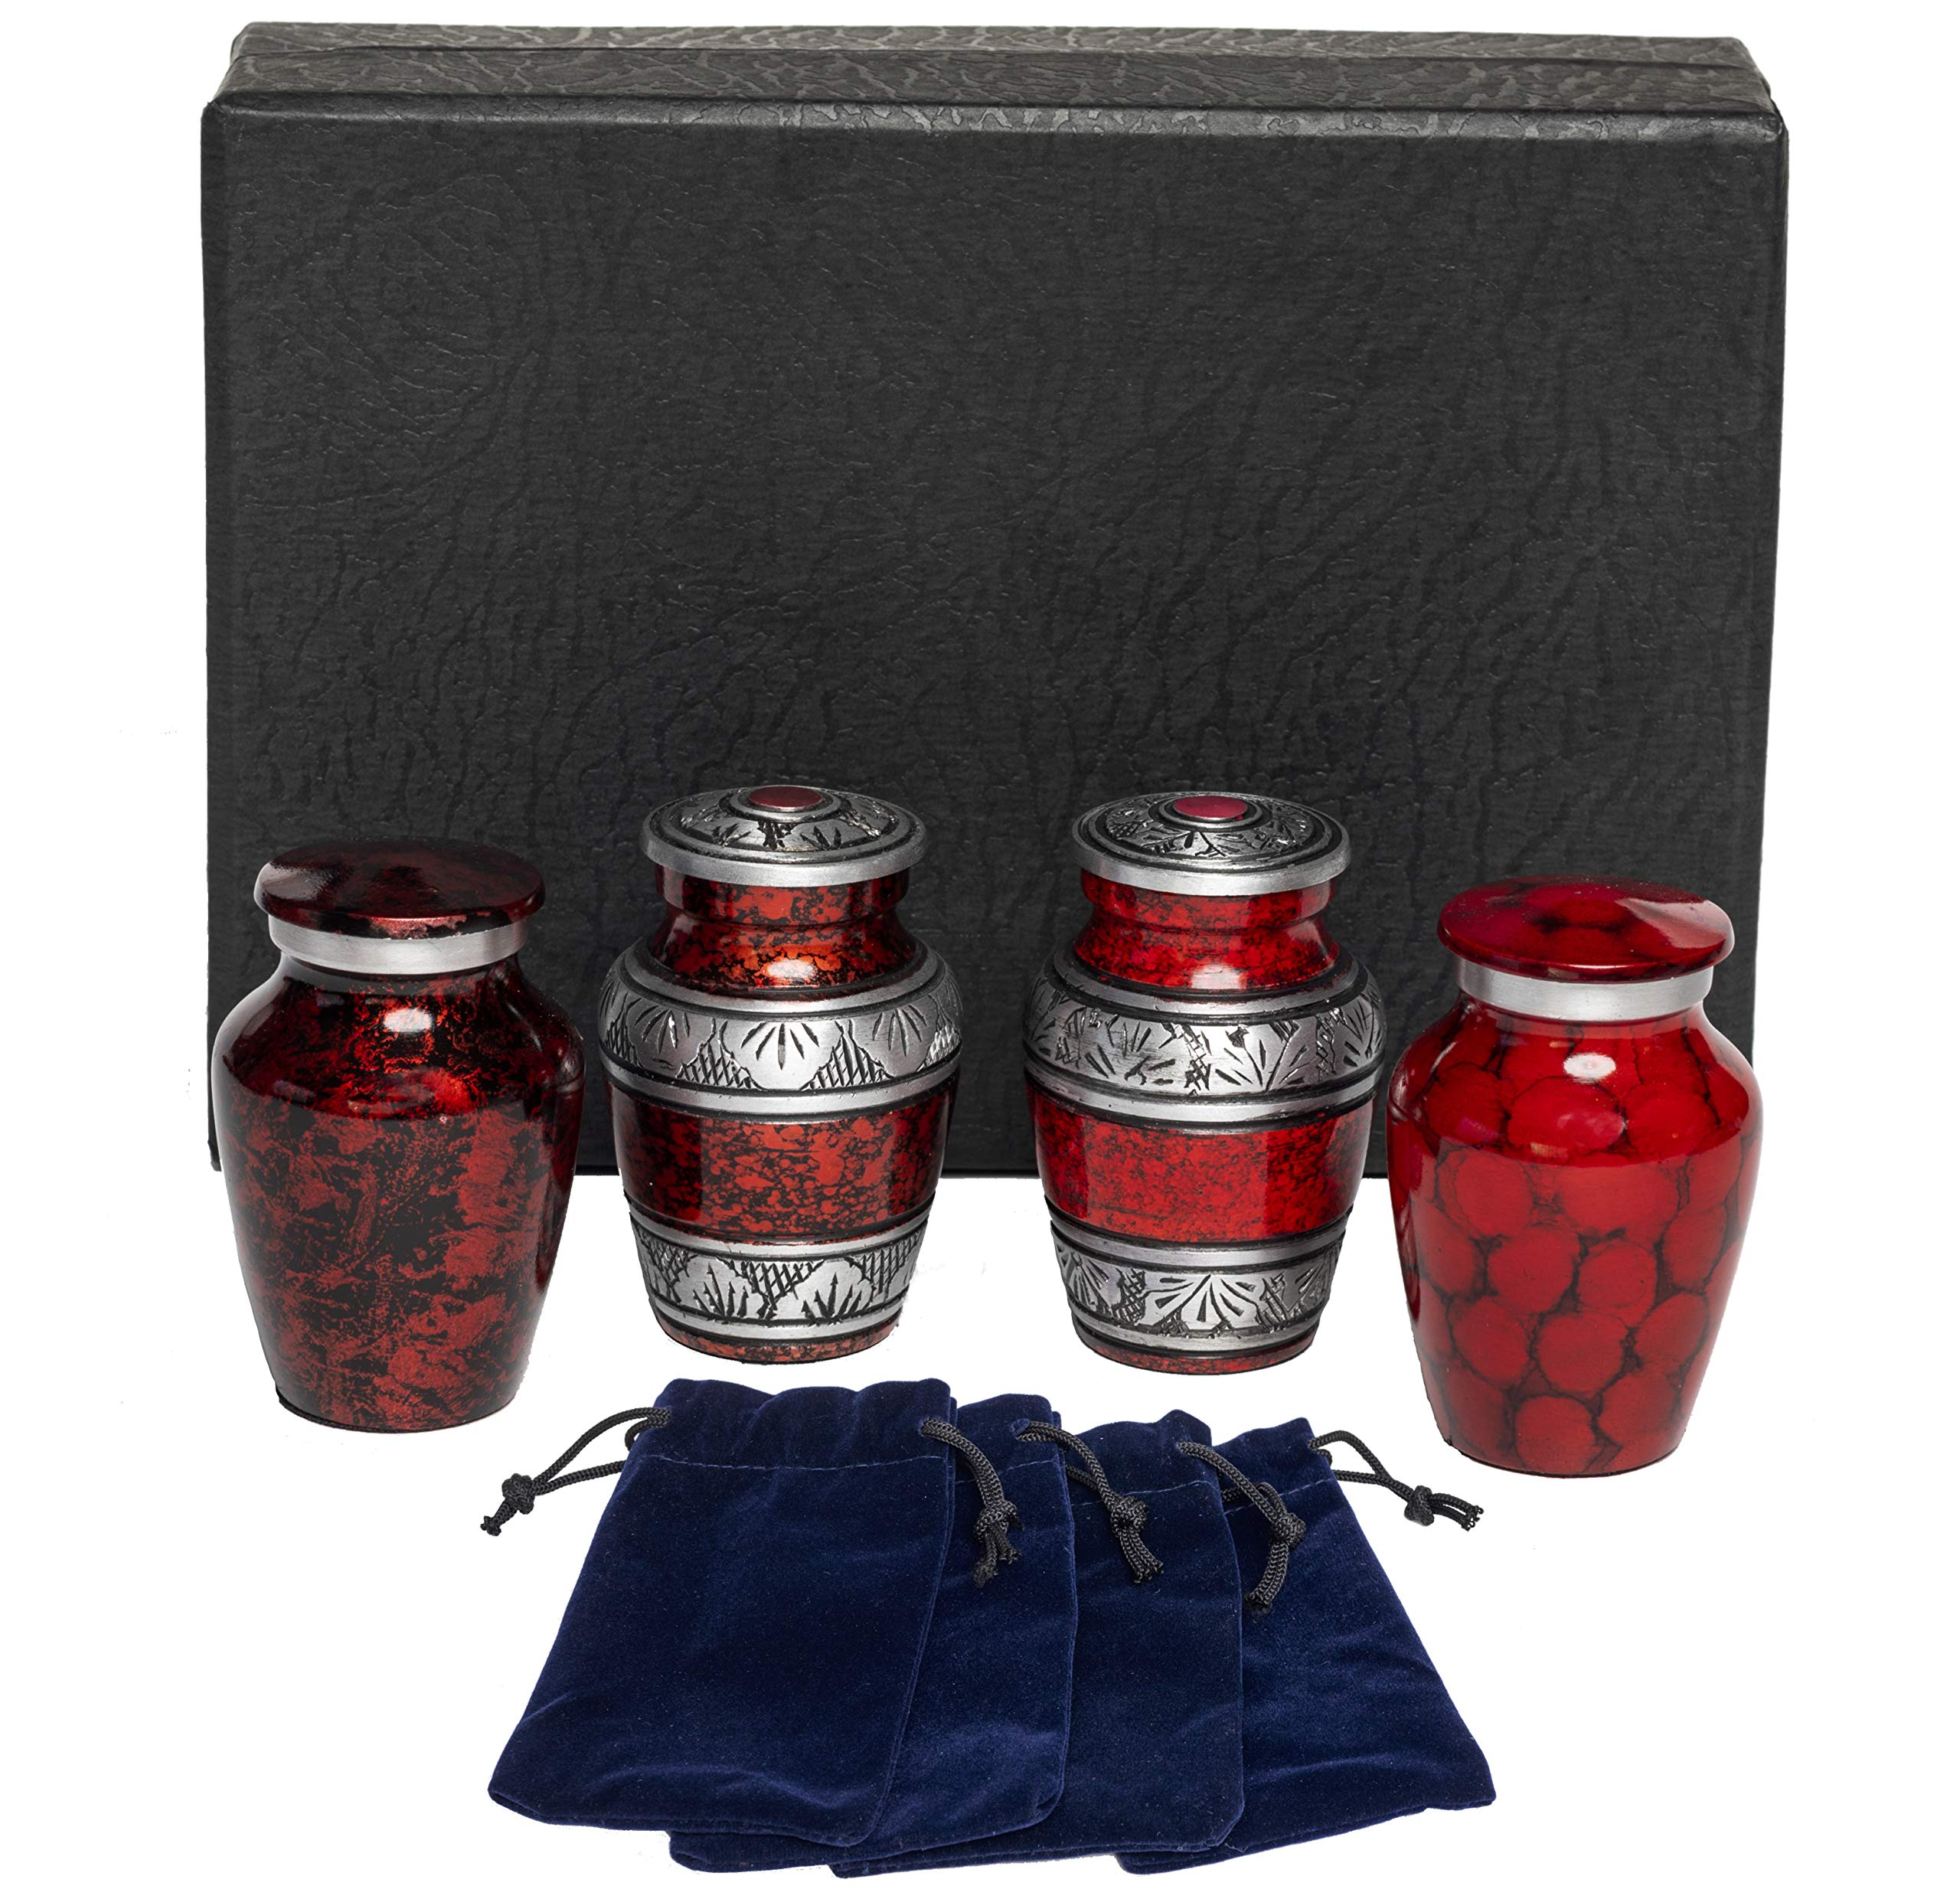 Eternal Harmony Keepsake Urns for Human Ashes   4 Cremation Urns Carefully Handcrafted with Elegant Finishes to Honor Your Loved One   Each Small Urn Comes in a Beautiful Velvet Bag (Red)